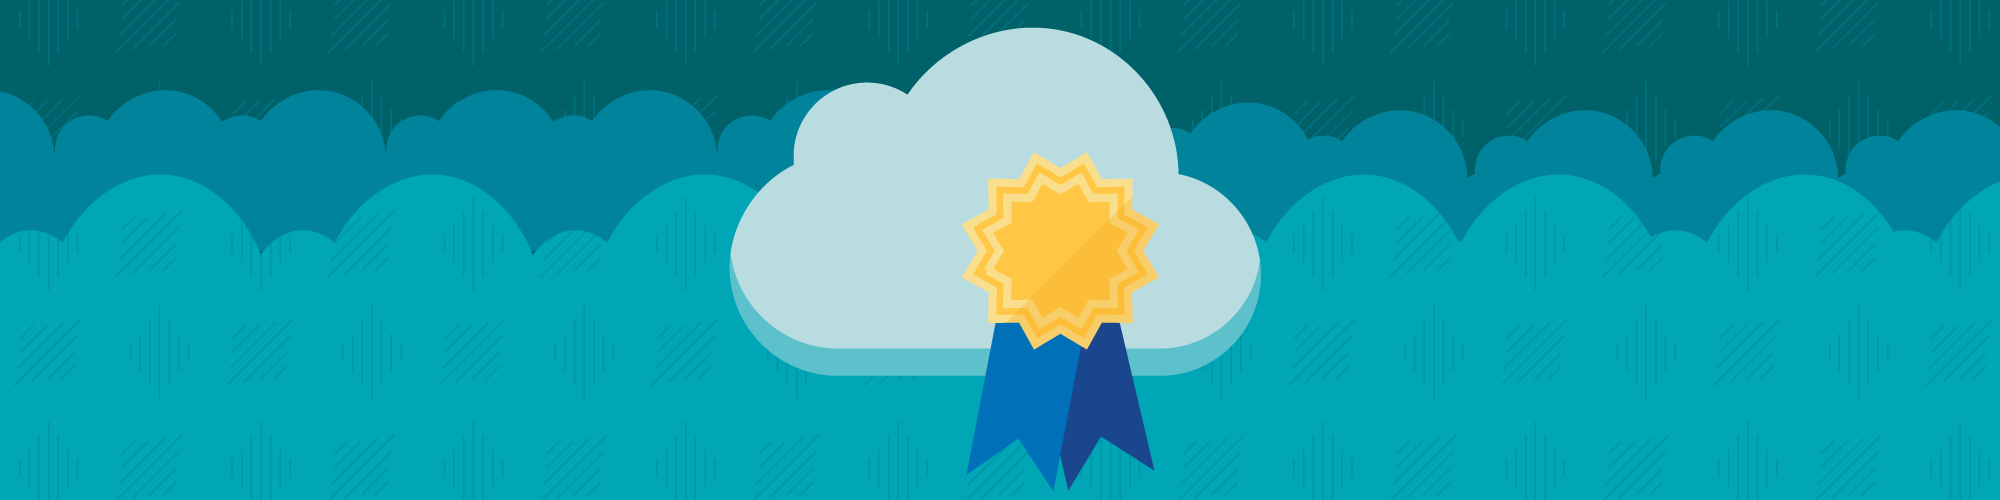 Nessus Receives CIS Certification for Amazon AWS Foundations ...